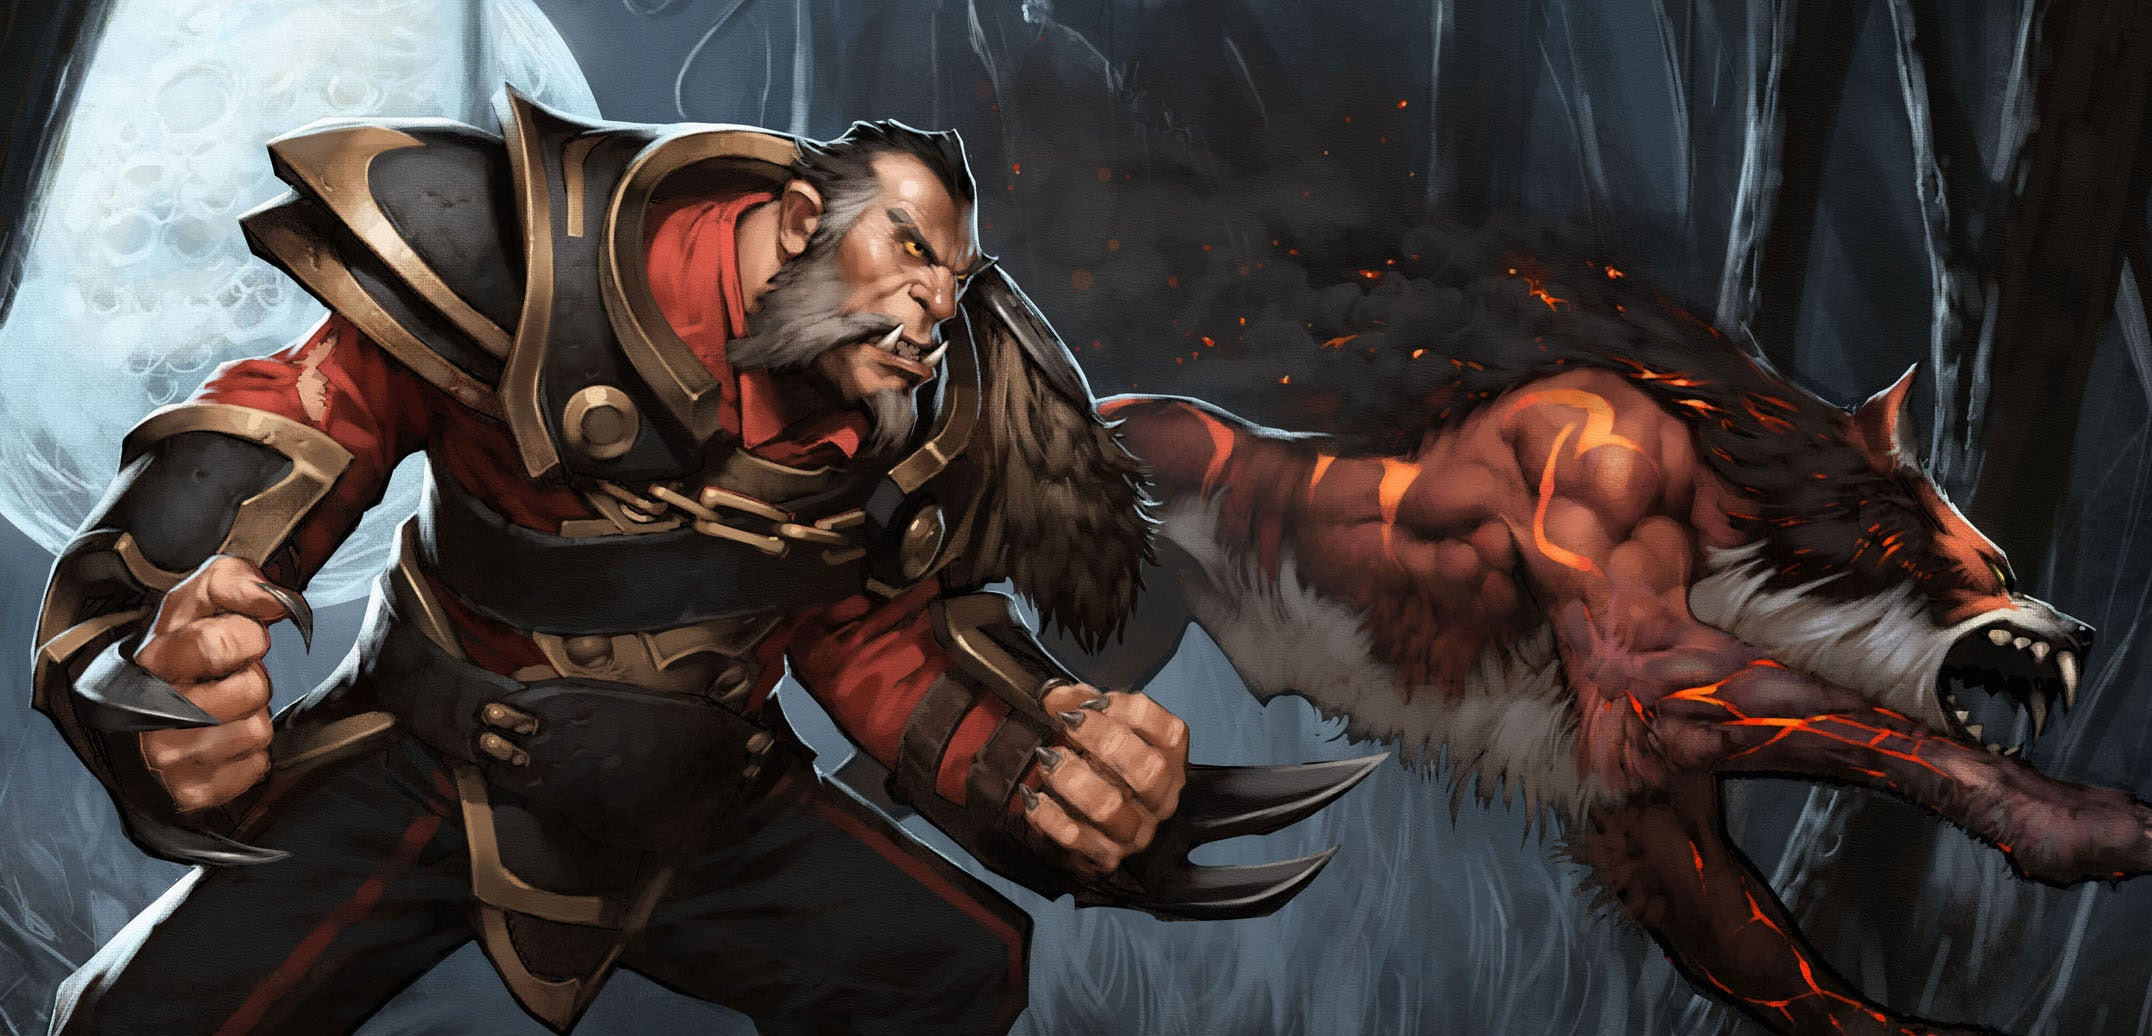 Health Issue Sparks DOTA 2 Controversy